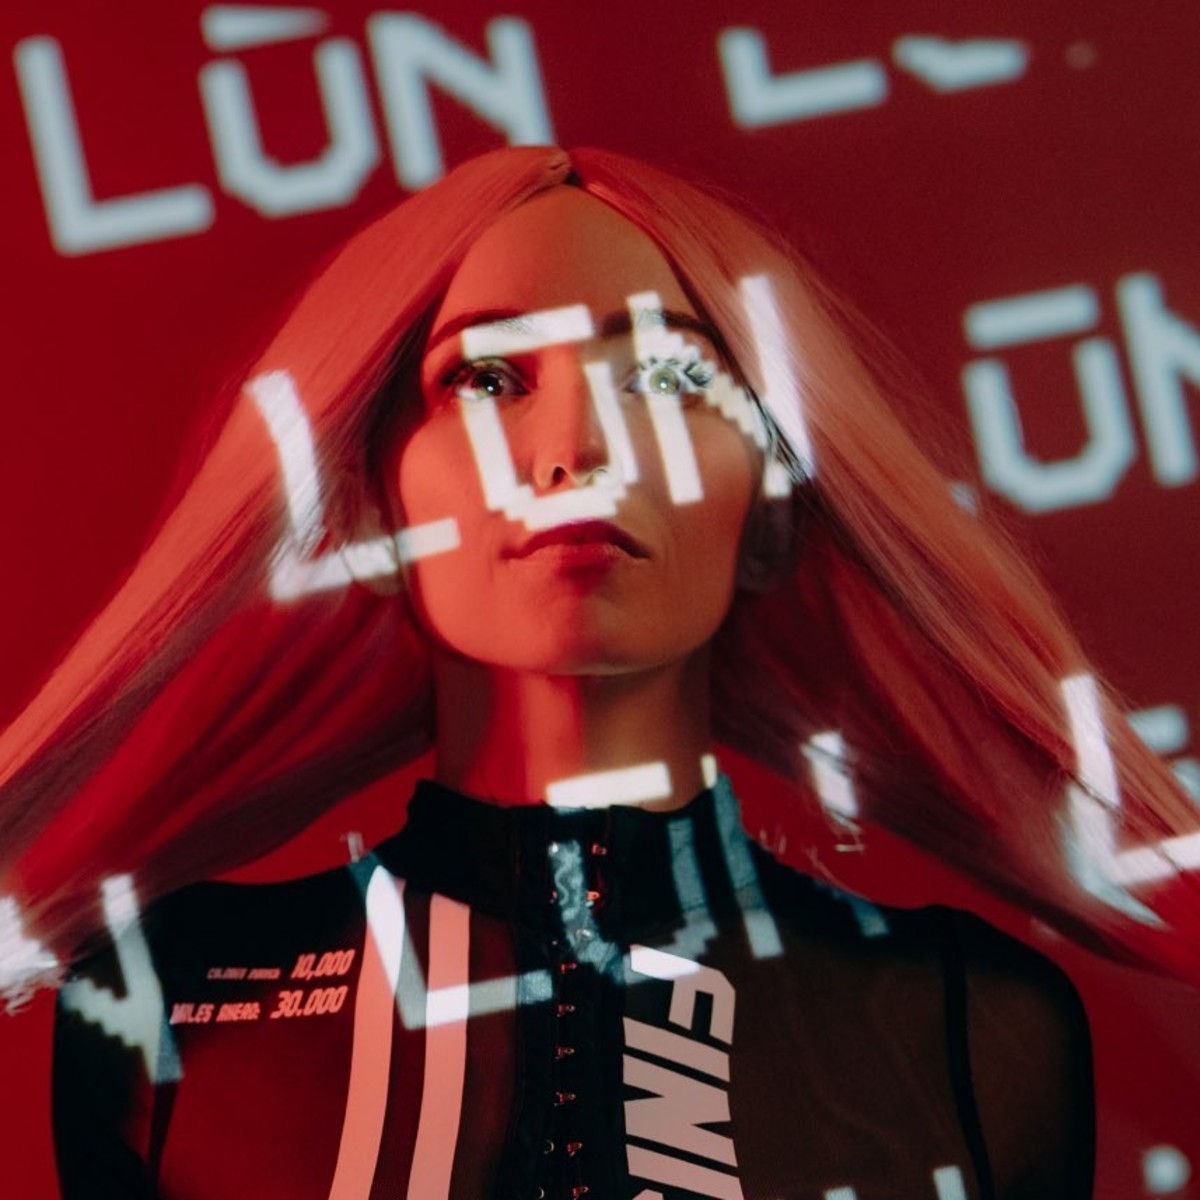 LŪN released her debut EP, haha i like it, via Fueled By Ramen.